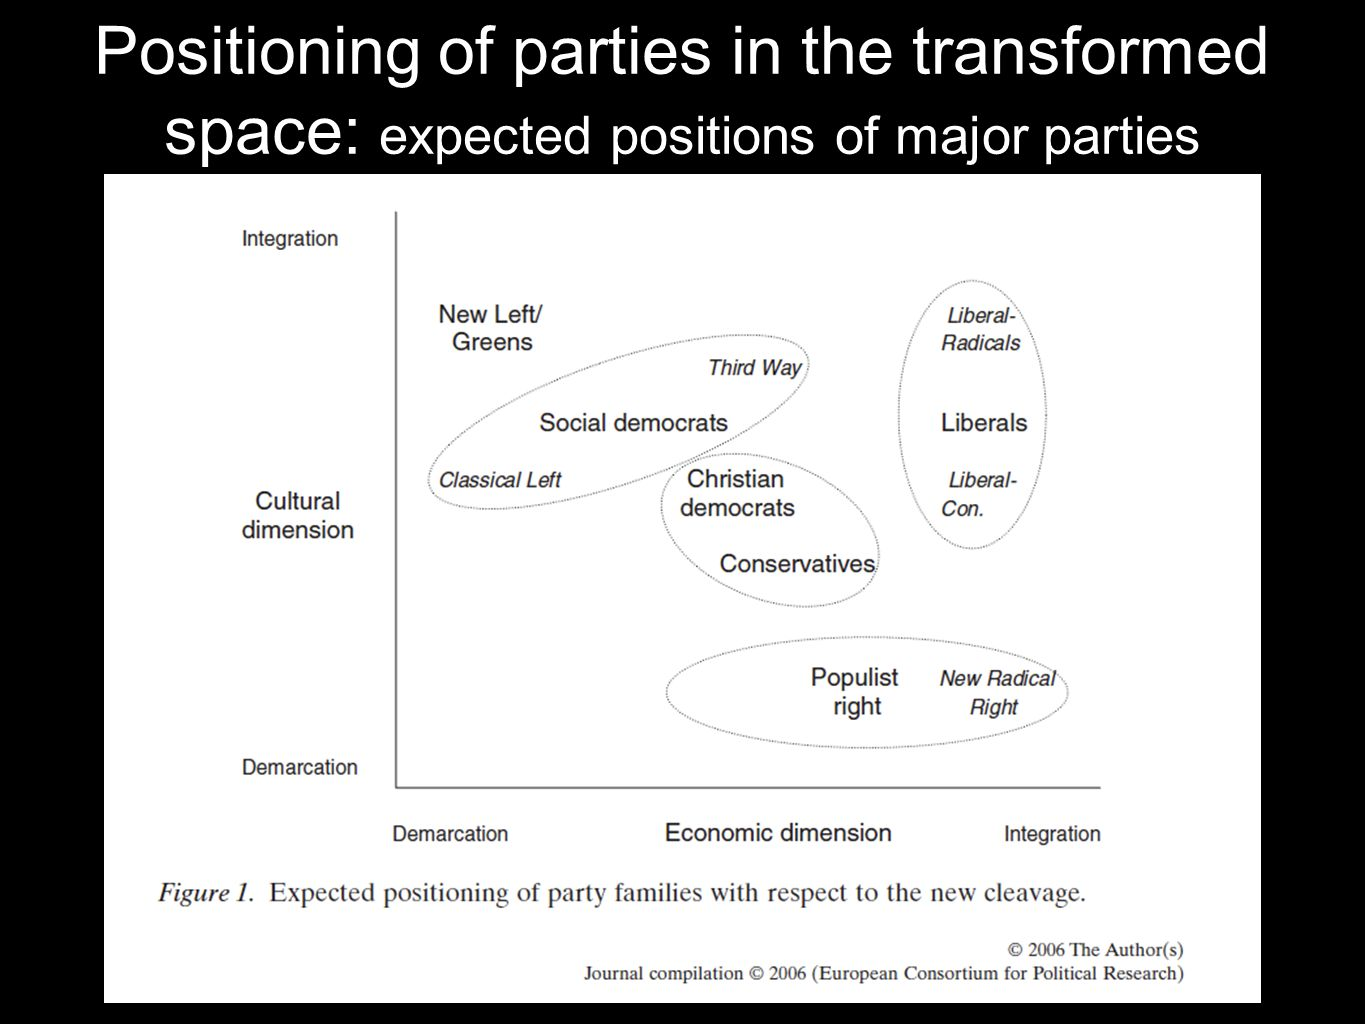 Positioning of parties in the transformed space: expected positions of major parties